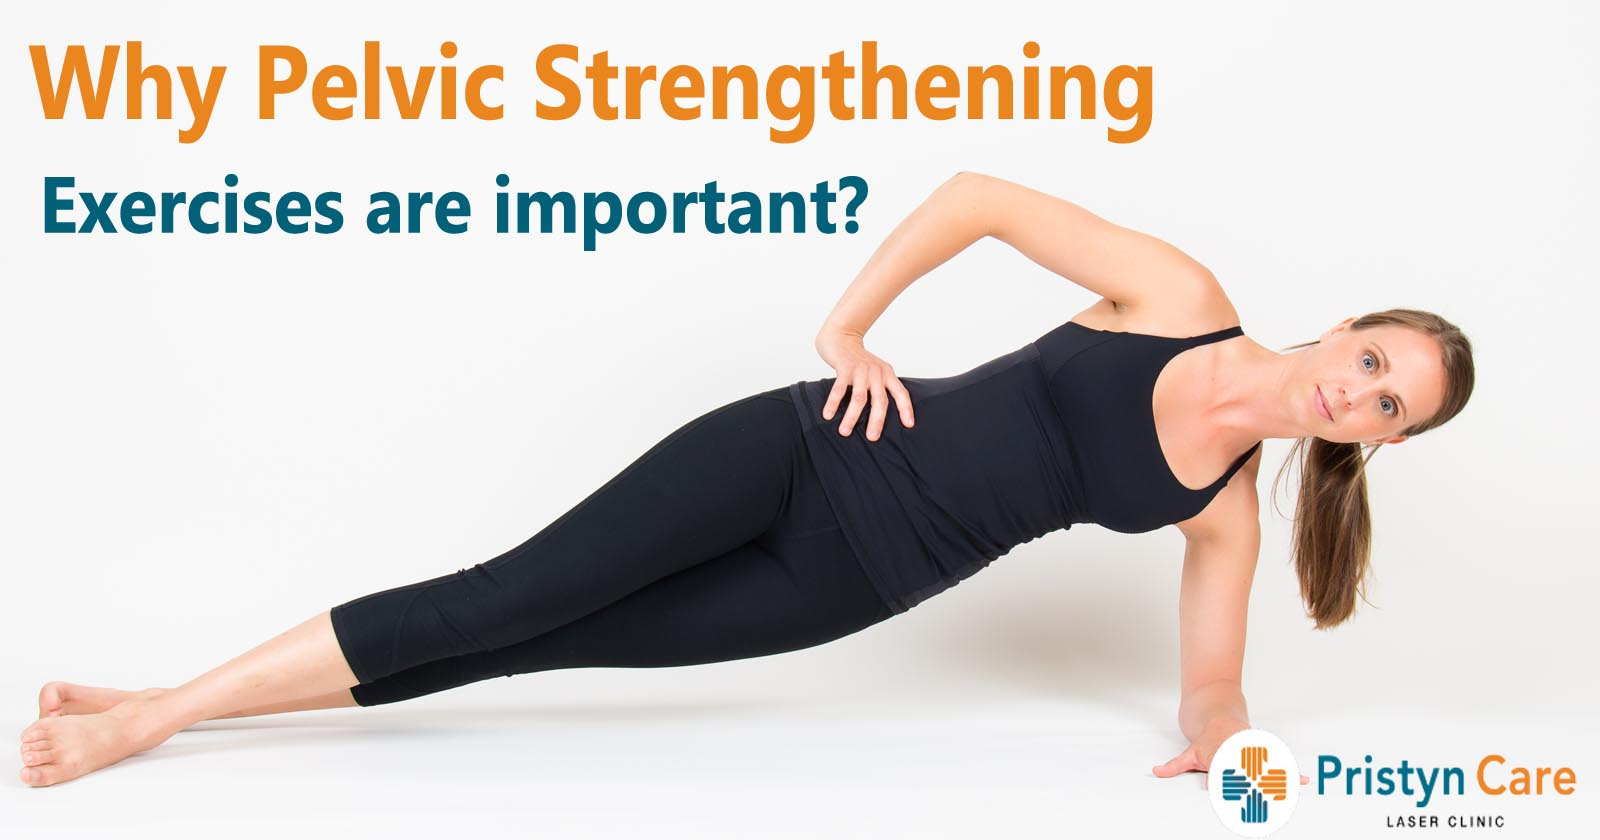 Why Pelvic strengthening exercises are important?